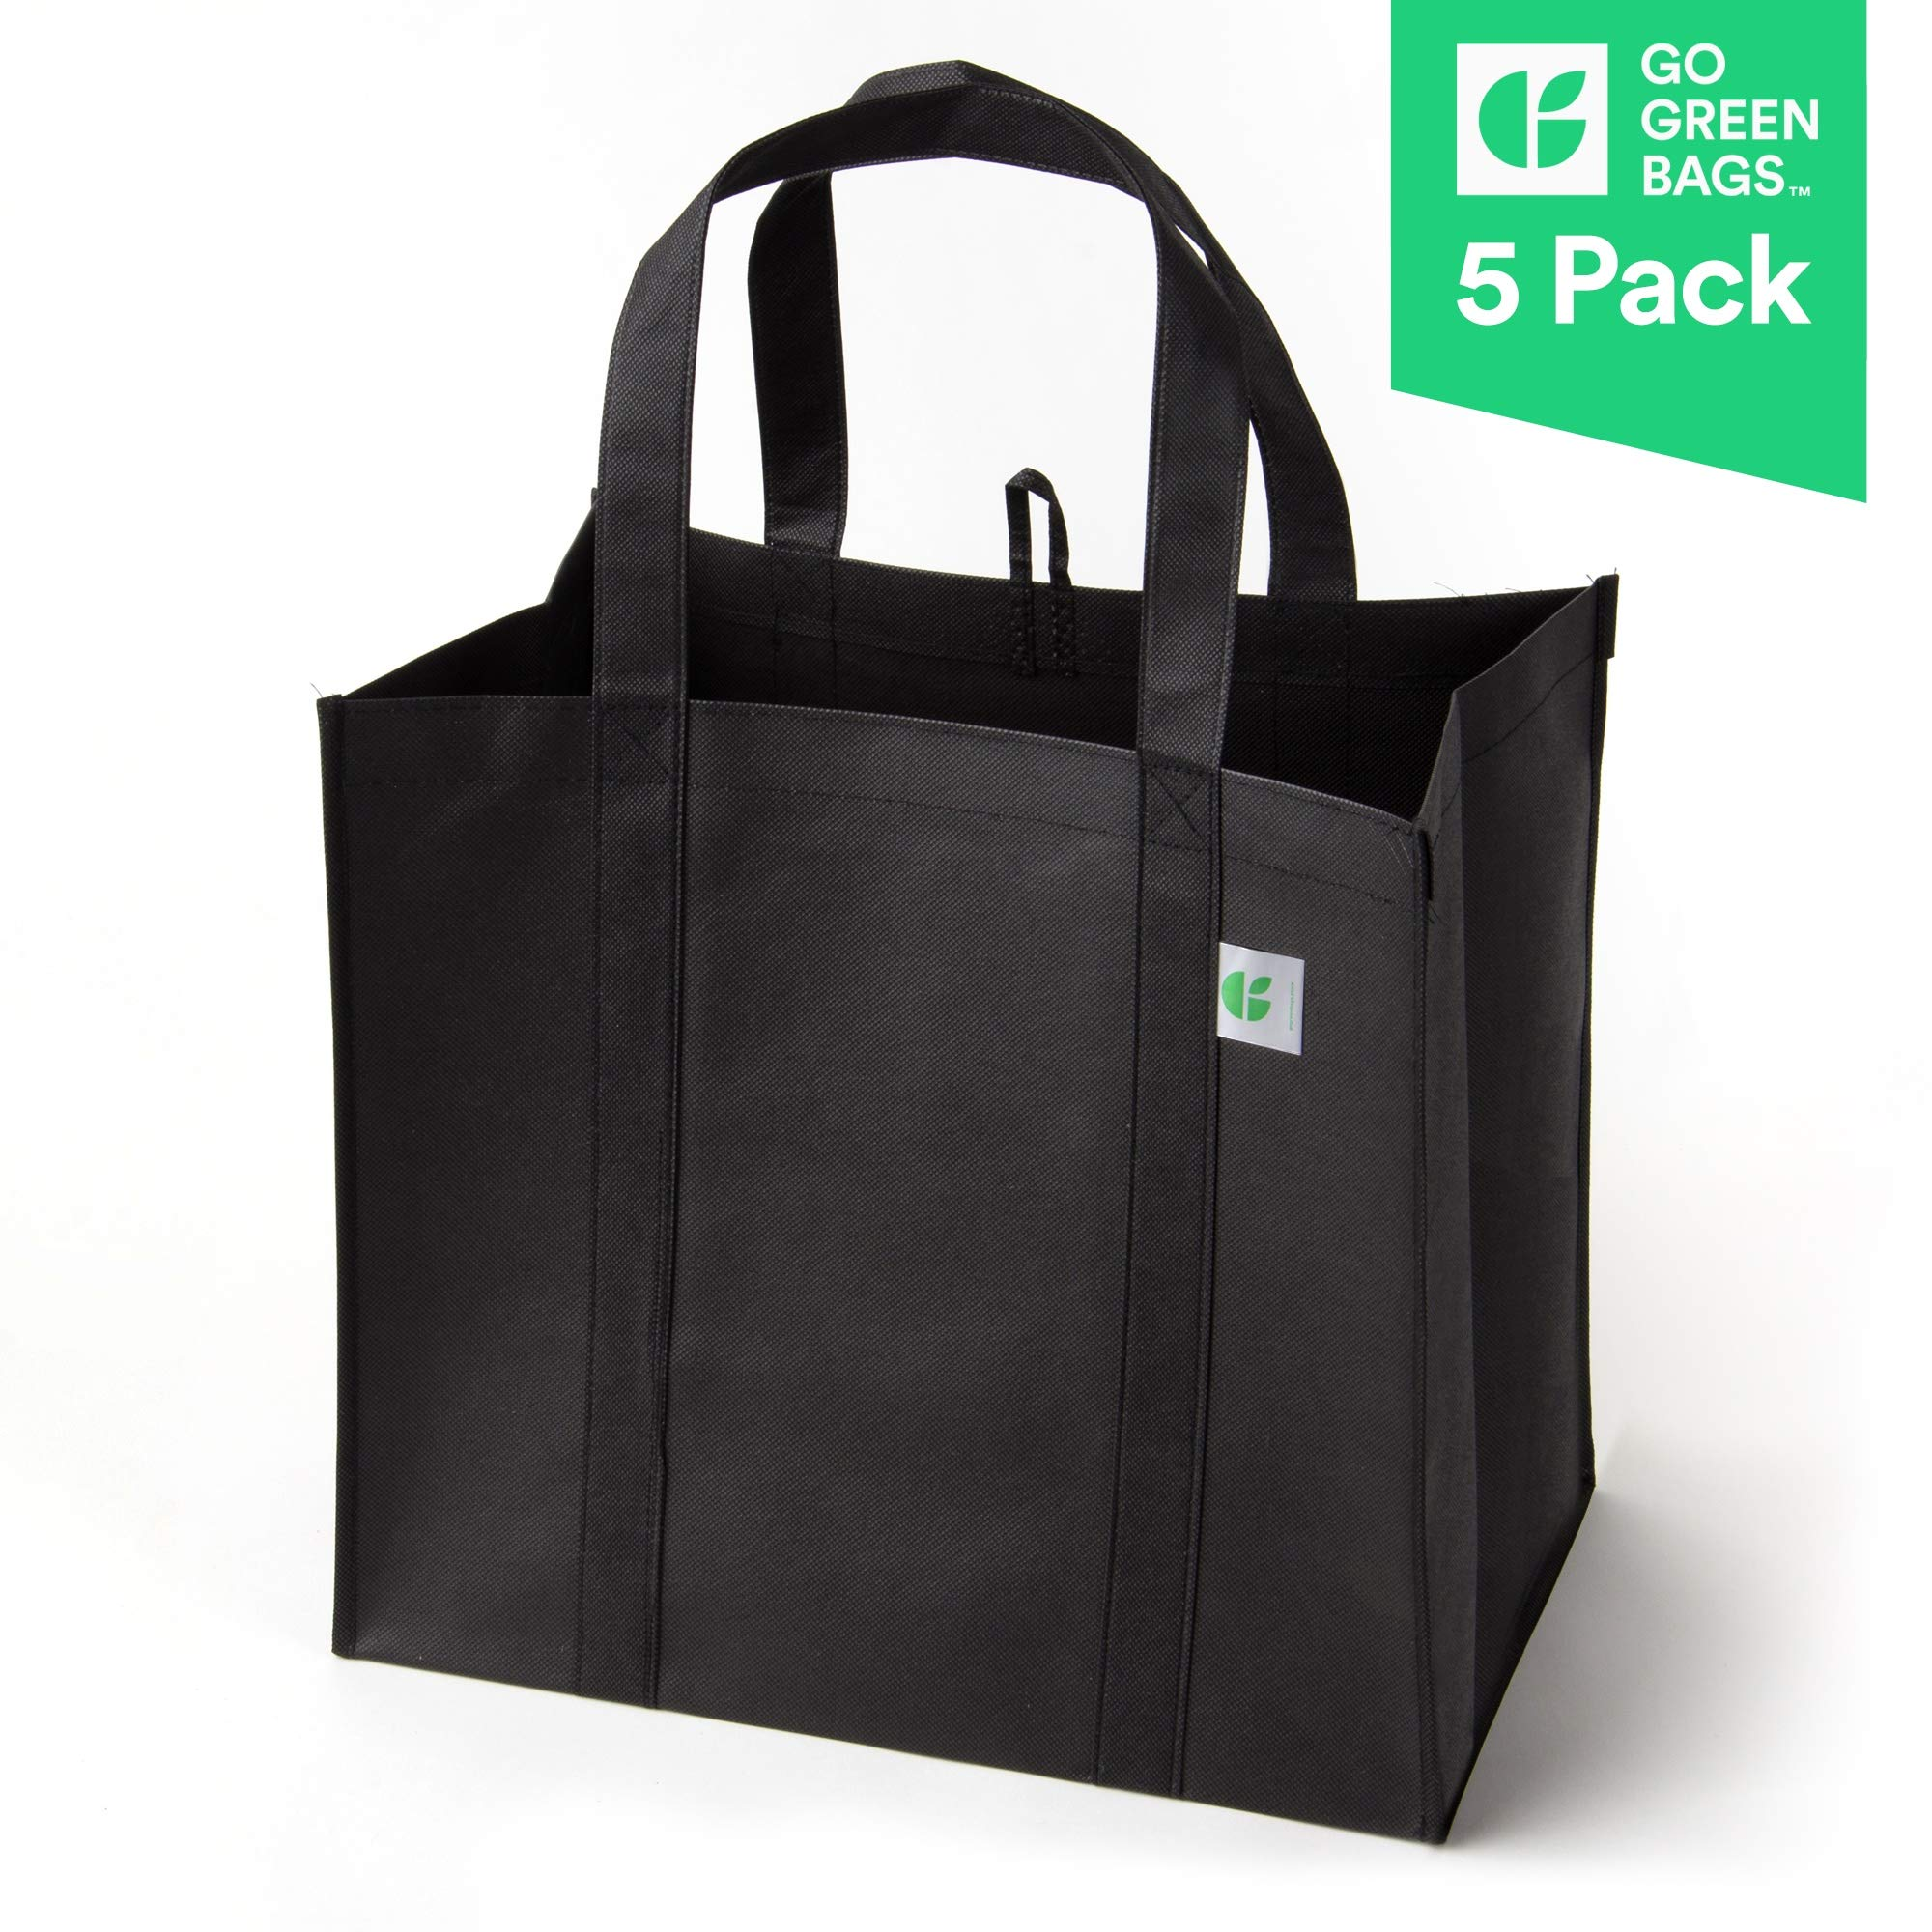 Reusable Grocery Bags (5 Pack, Black) – Hold 40+ lbs – Extra Large & Super Strong, Heavy Duty Shopping Bags – Grocery Tote Bag with Reinforced Handles & Thick Plastic Bottom for Strength